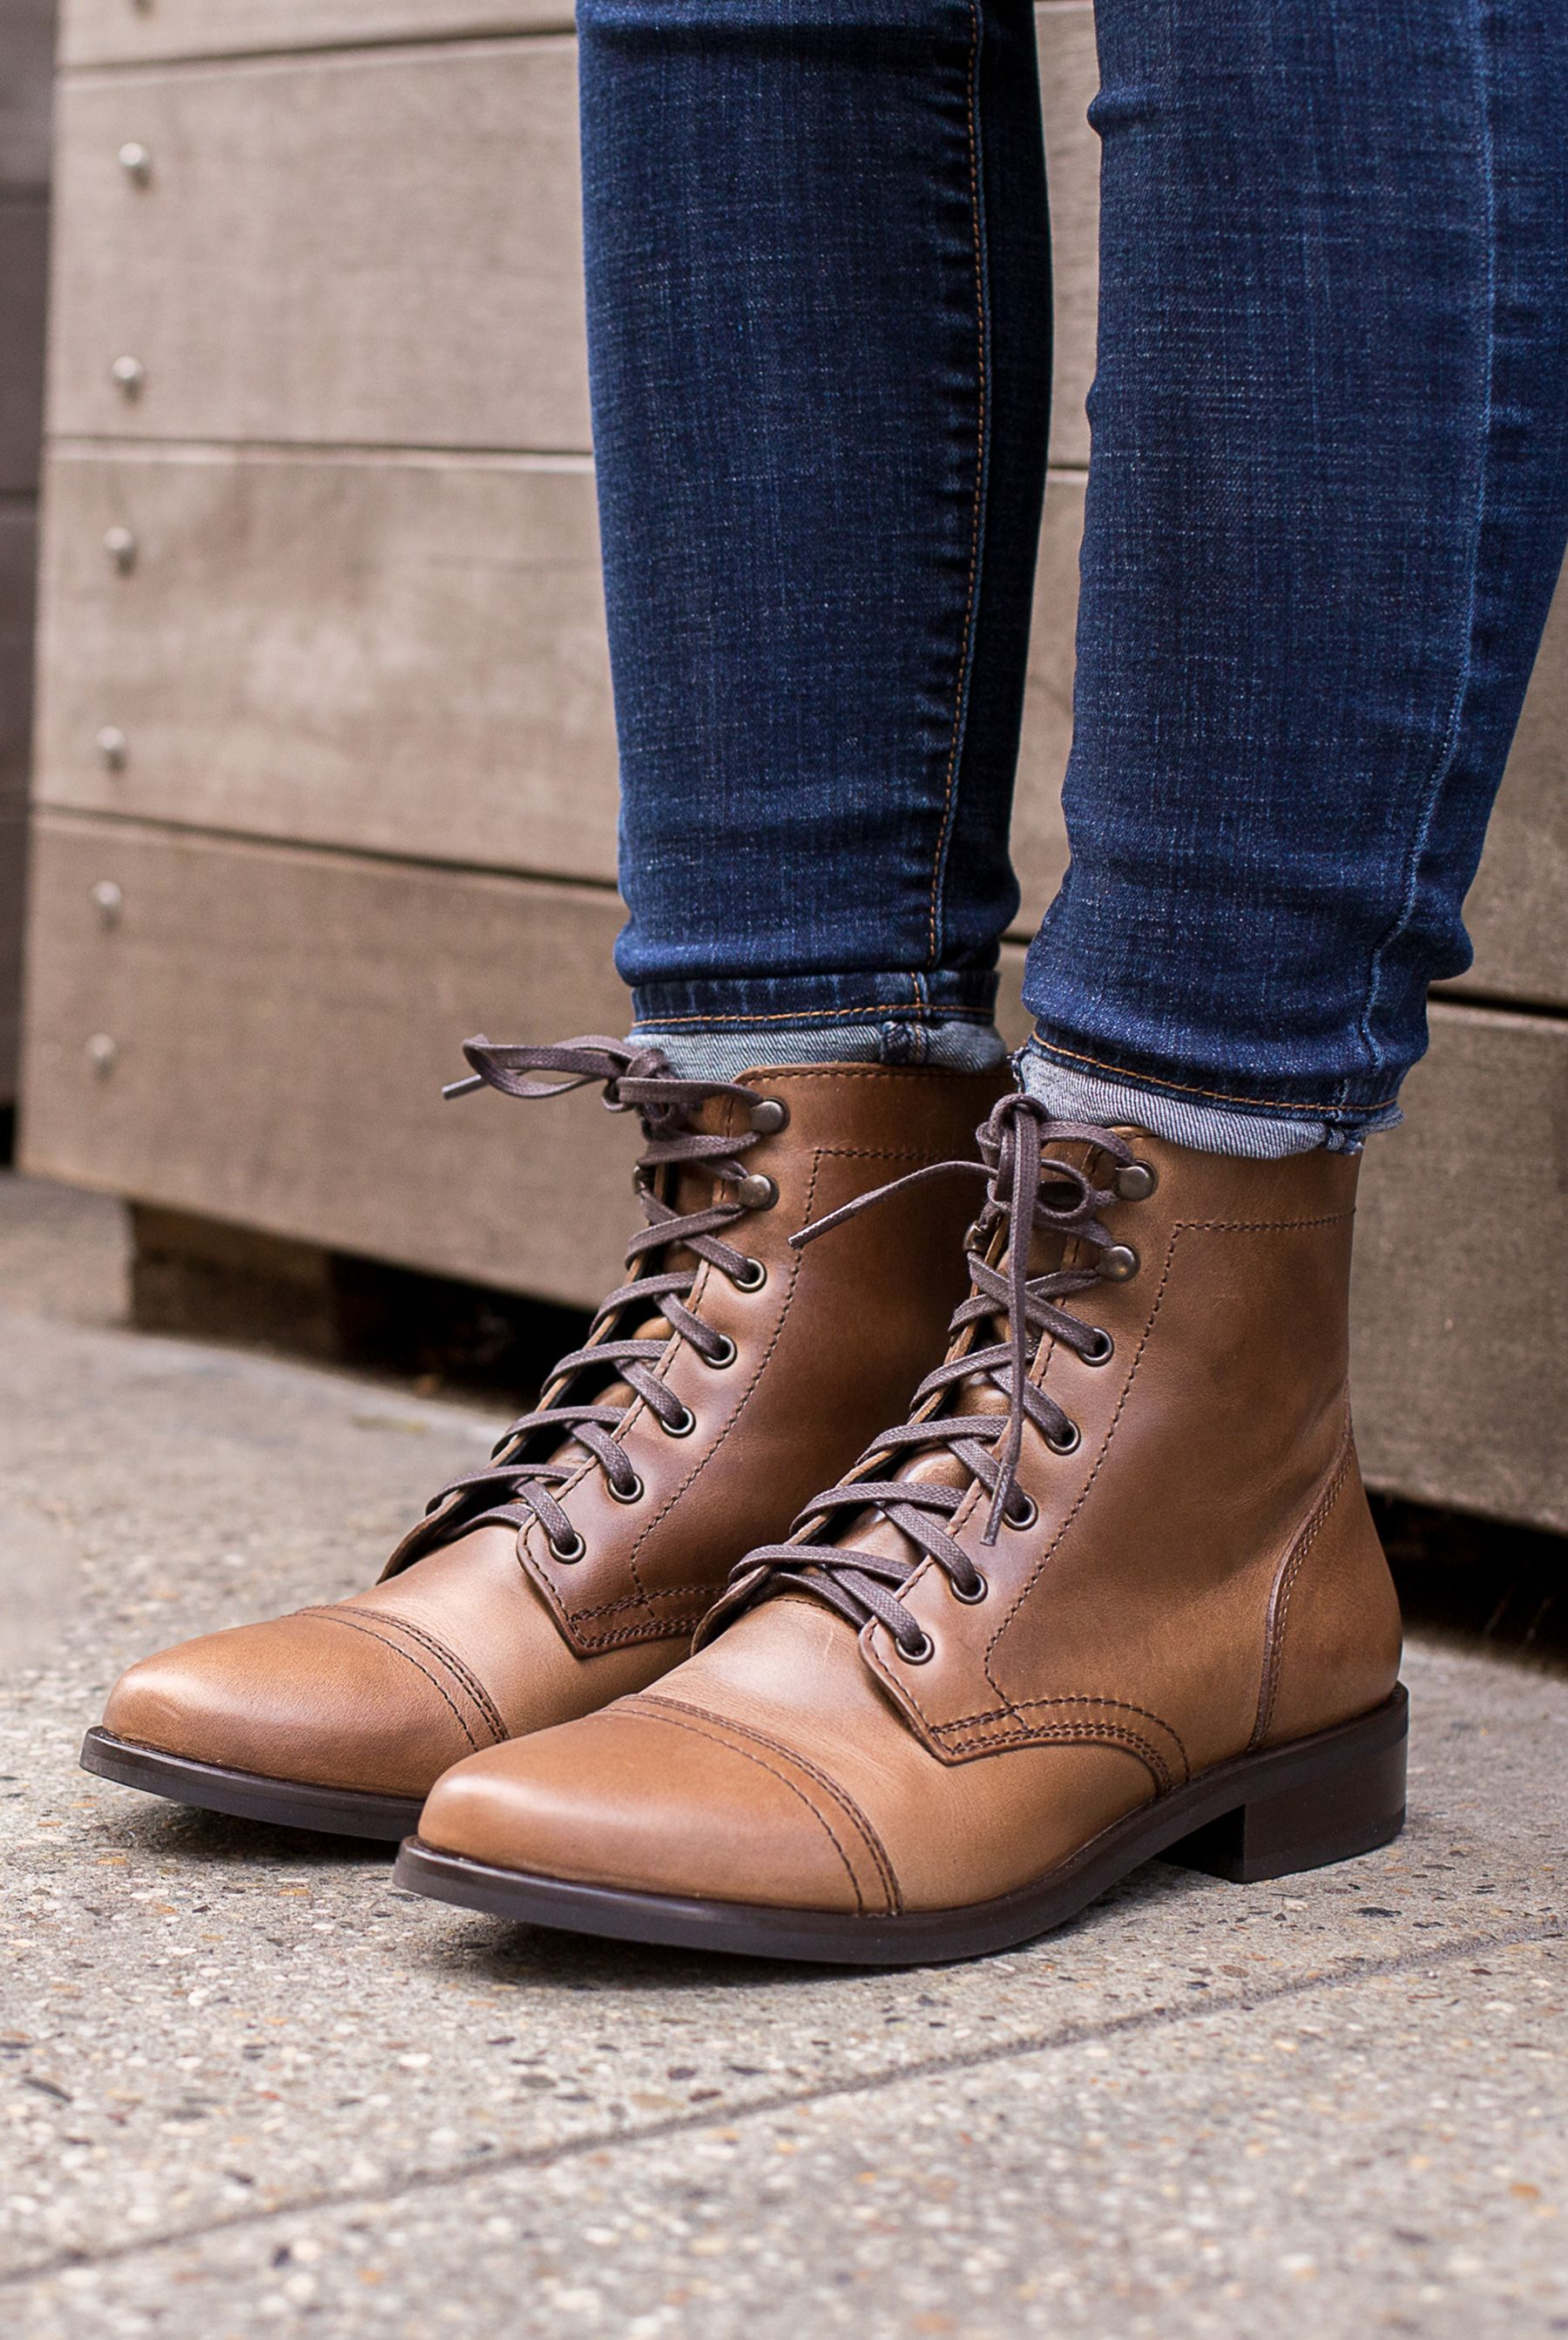 fe7ebae330e Shop the Women's Natural Captain Lace-Up Boot at Thursday Boot Company.  Available in 4+ Colors. 4,500+ 5-Star Reviews · Easy & Secure Checkout ·  Free ...